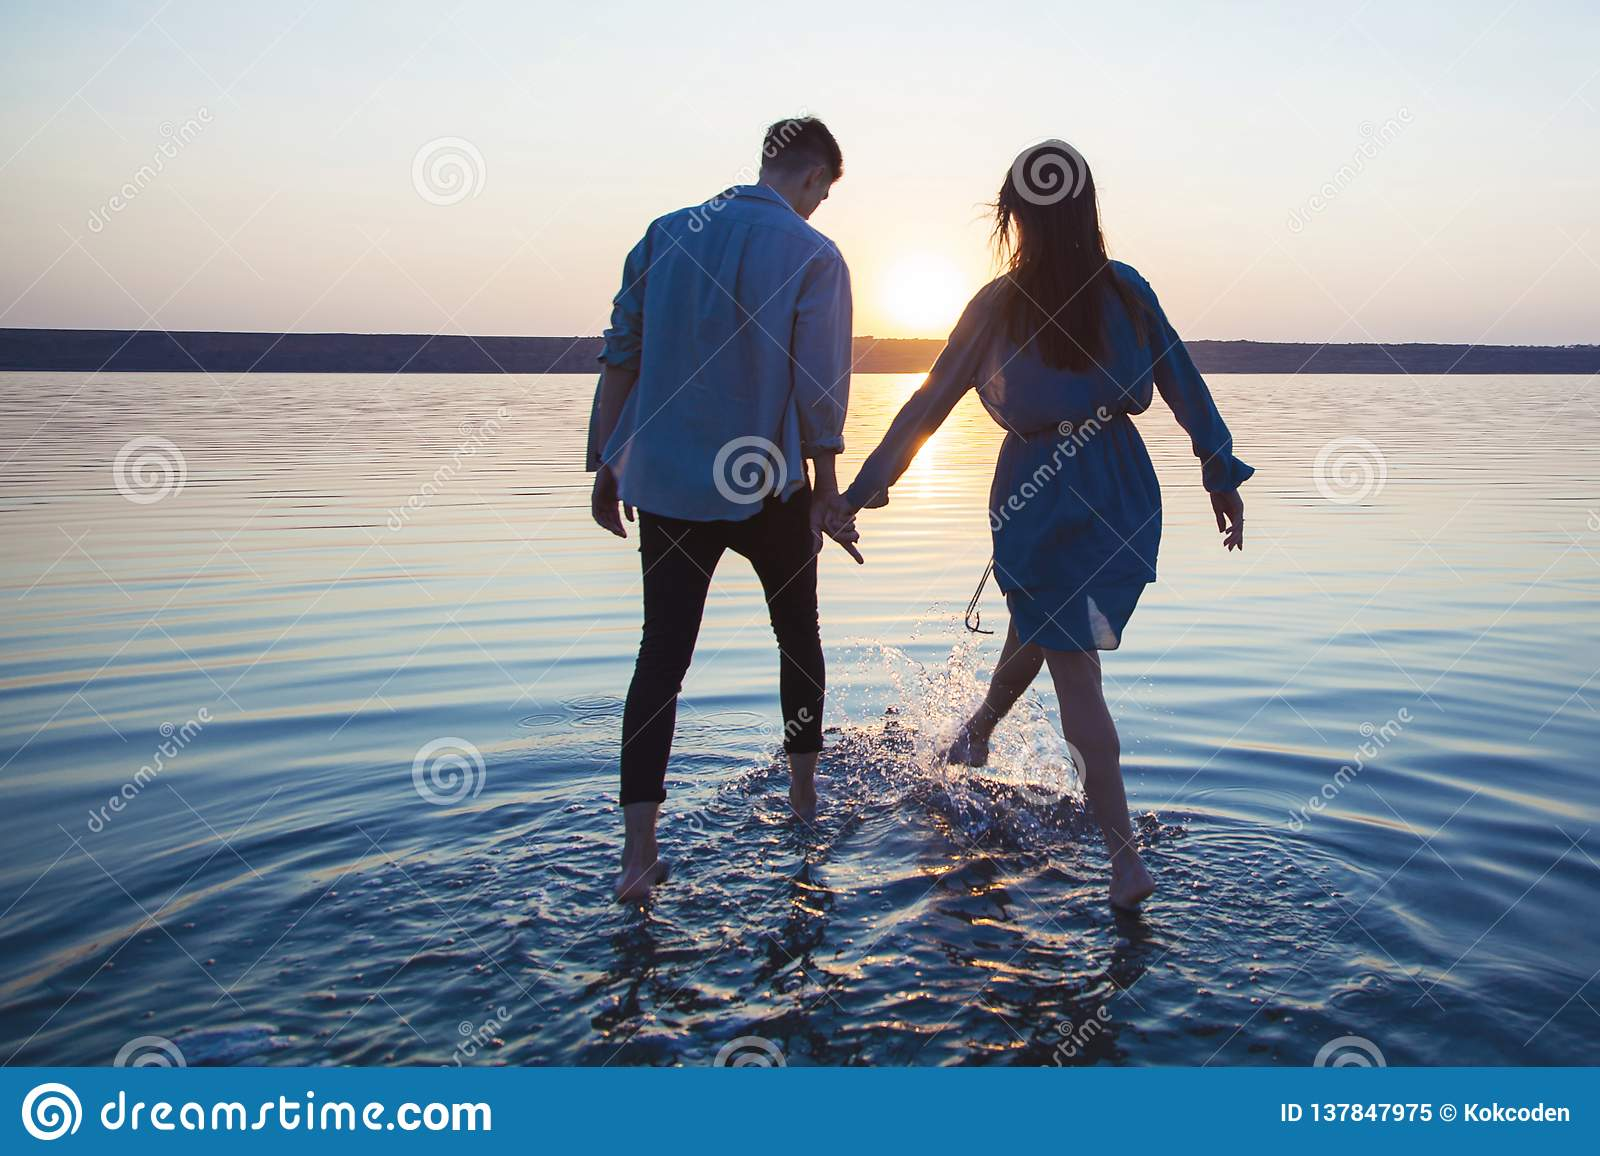 A loving couple holding hands is on the water.